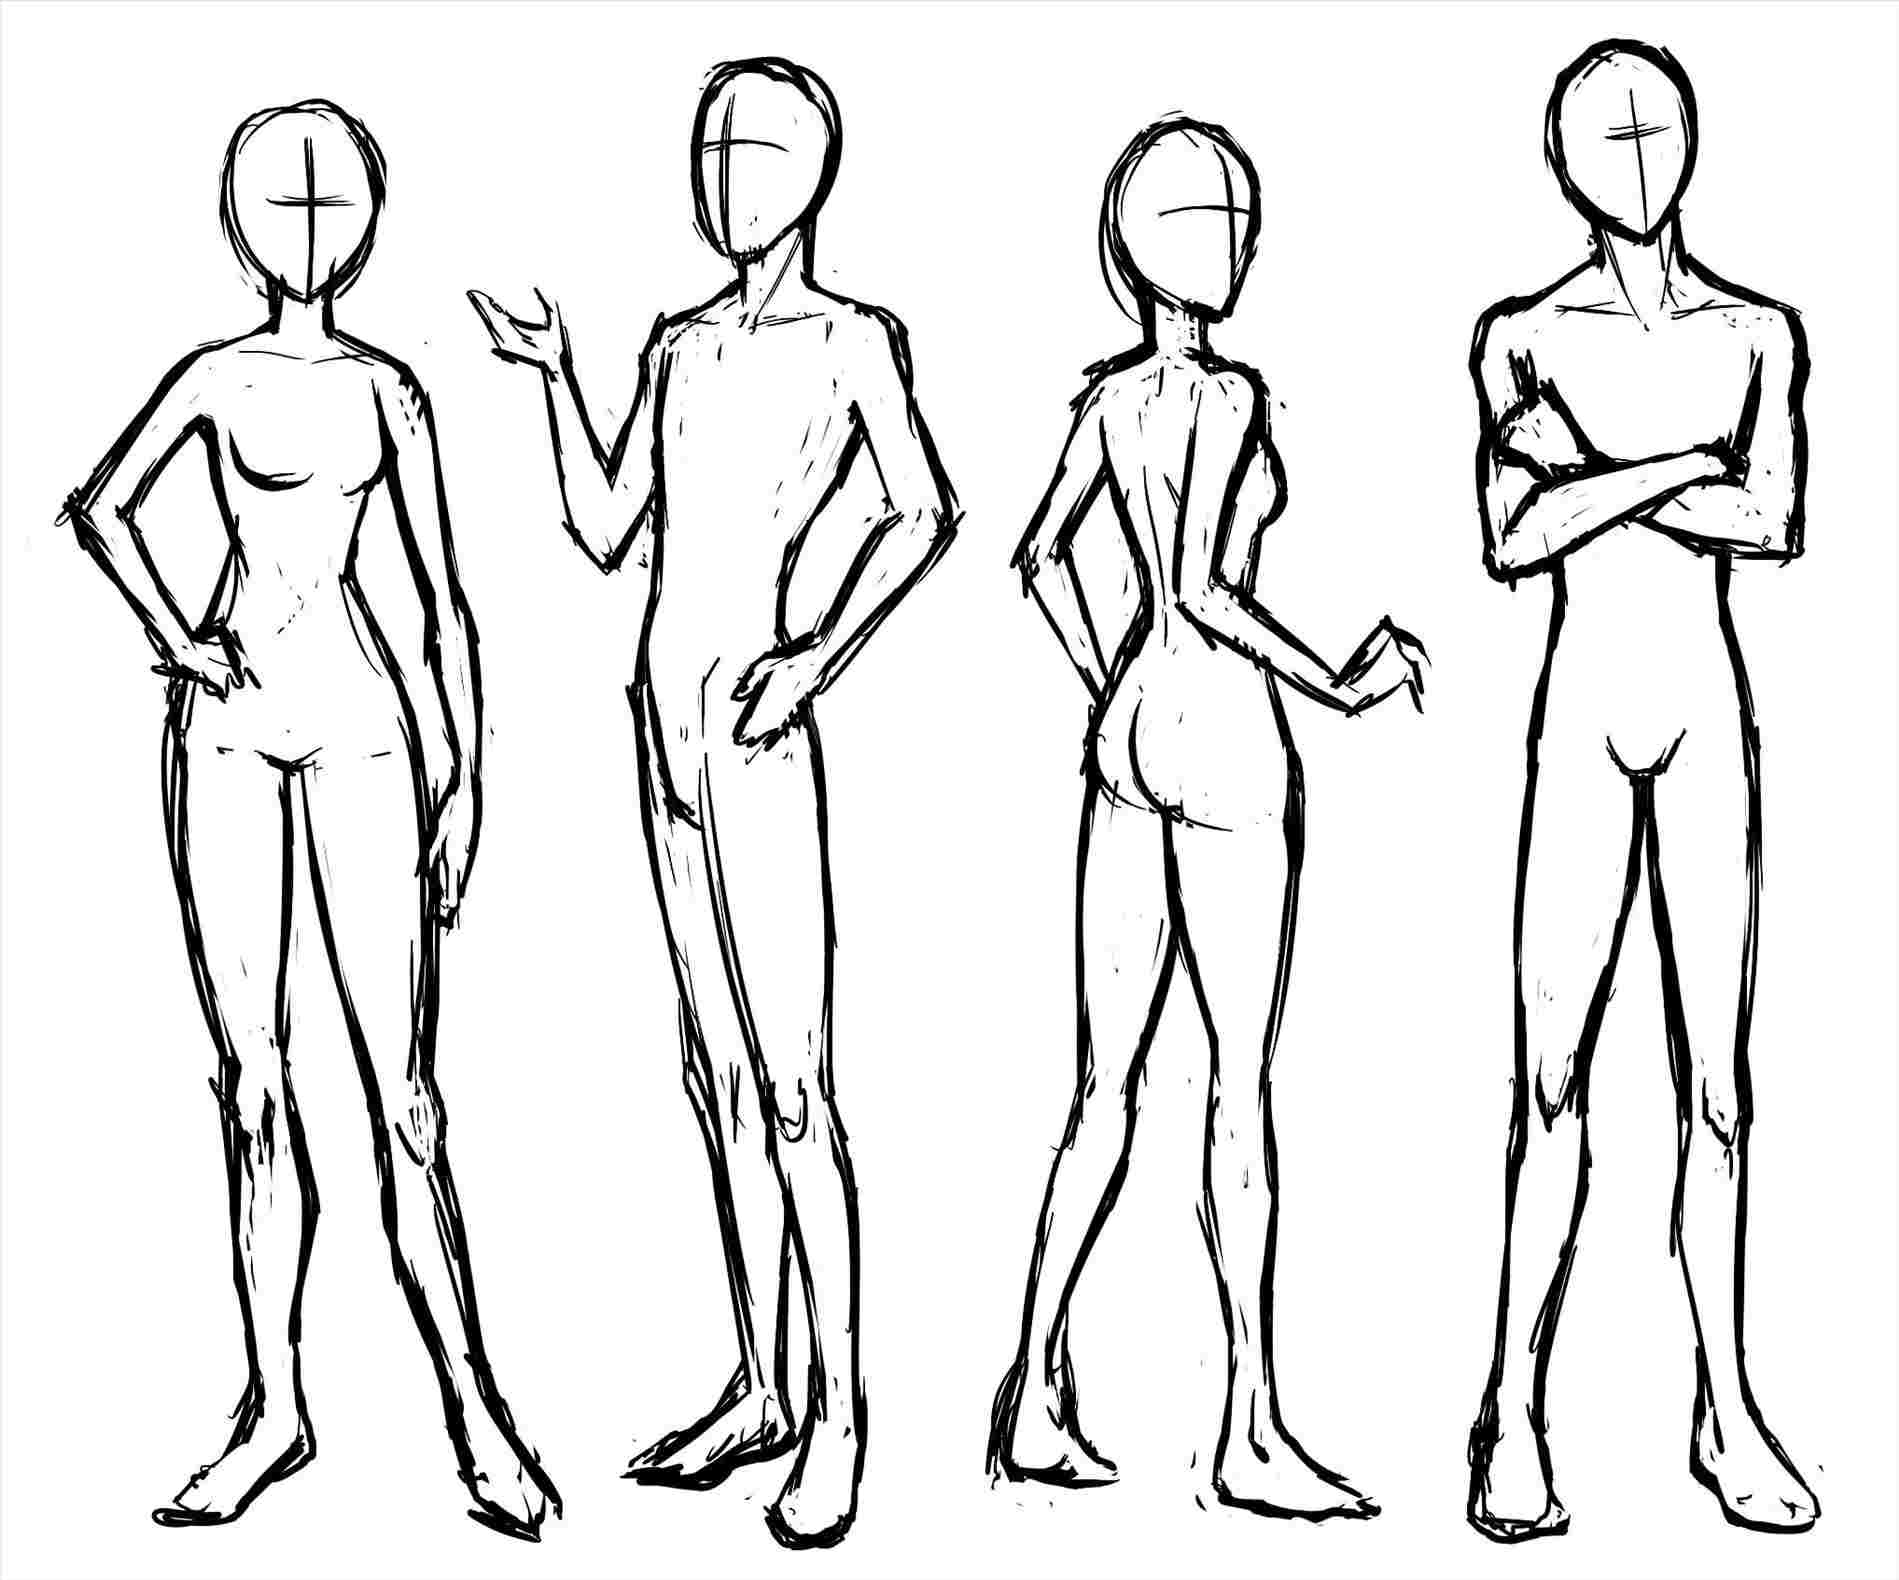 Female Body Drawing | Free download best Female Body Drawing